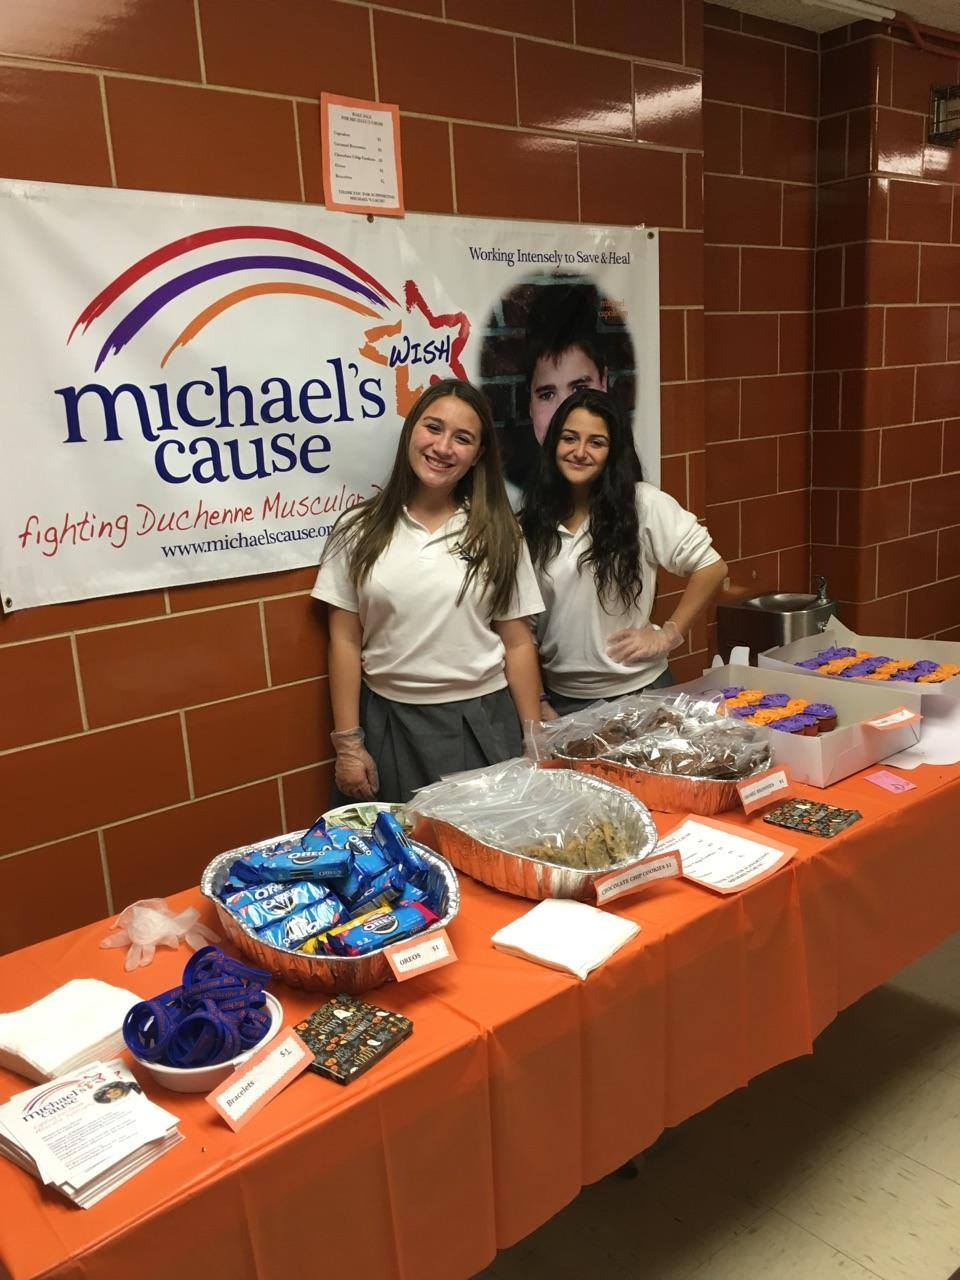 Local school fundraiser for Michael's cause.